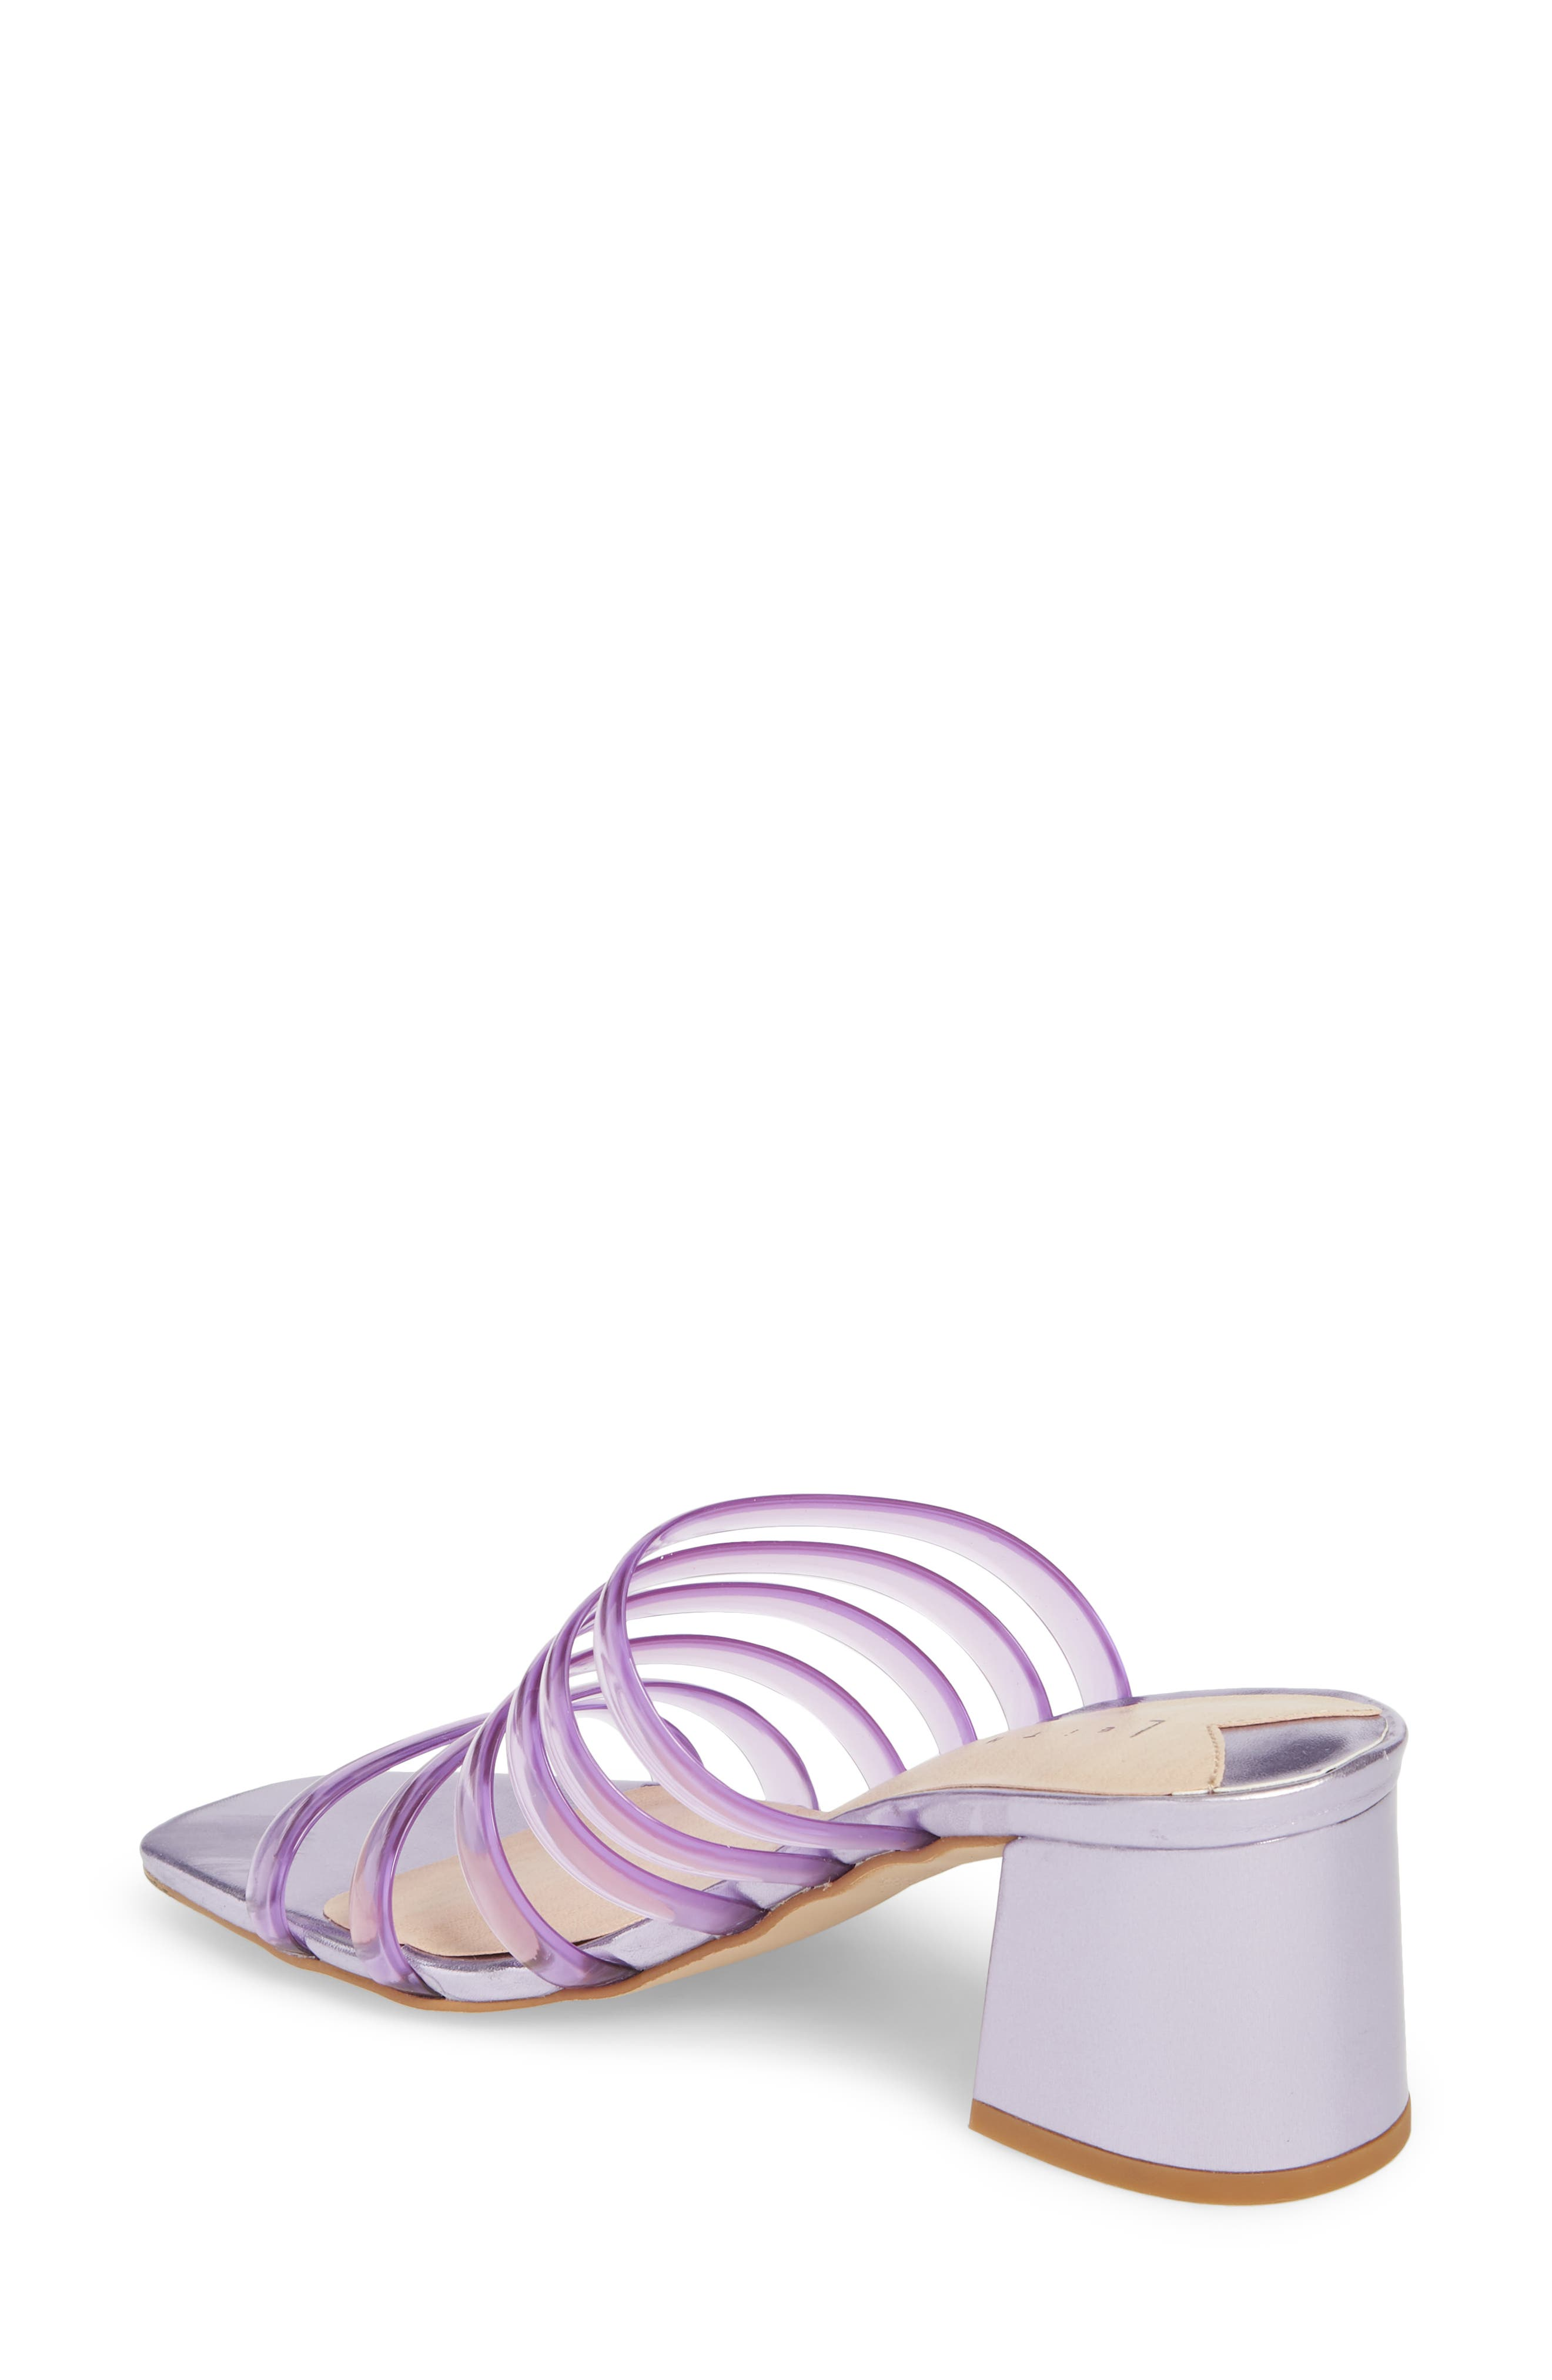 Cloud Jelly Slide Sandal,                             Alternate thumbnail 2, color,                             510